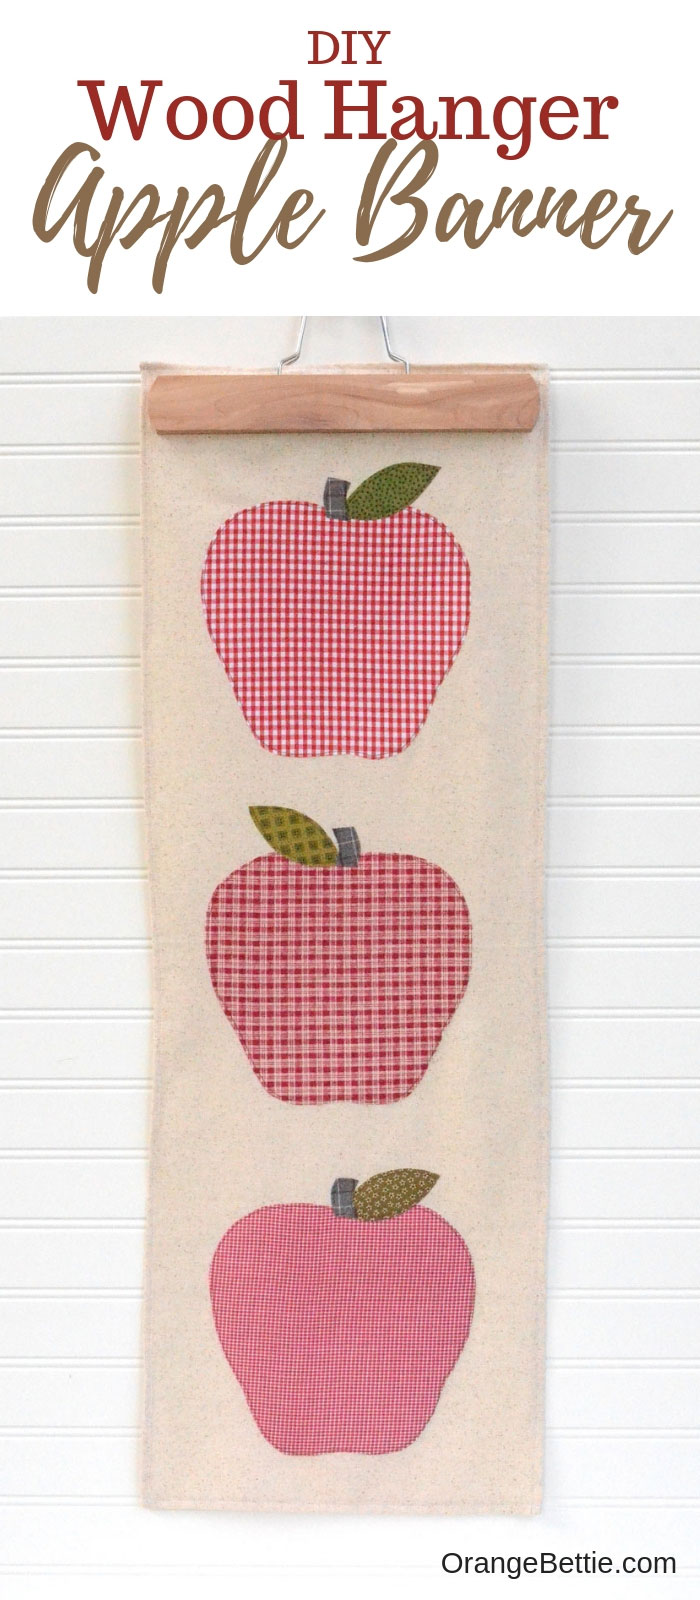 DIY Fall Apple Banner with Wood Hanger - Free Pattern